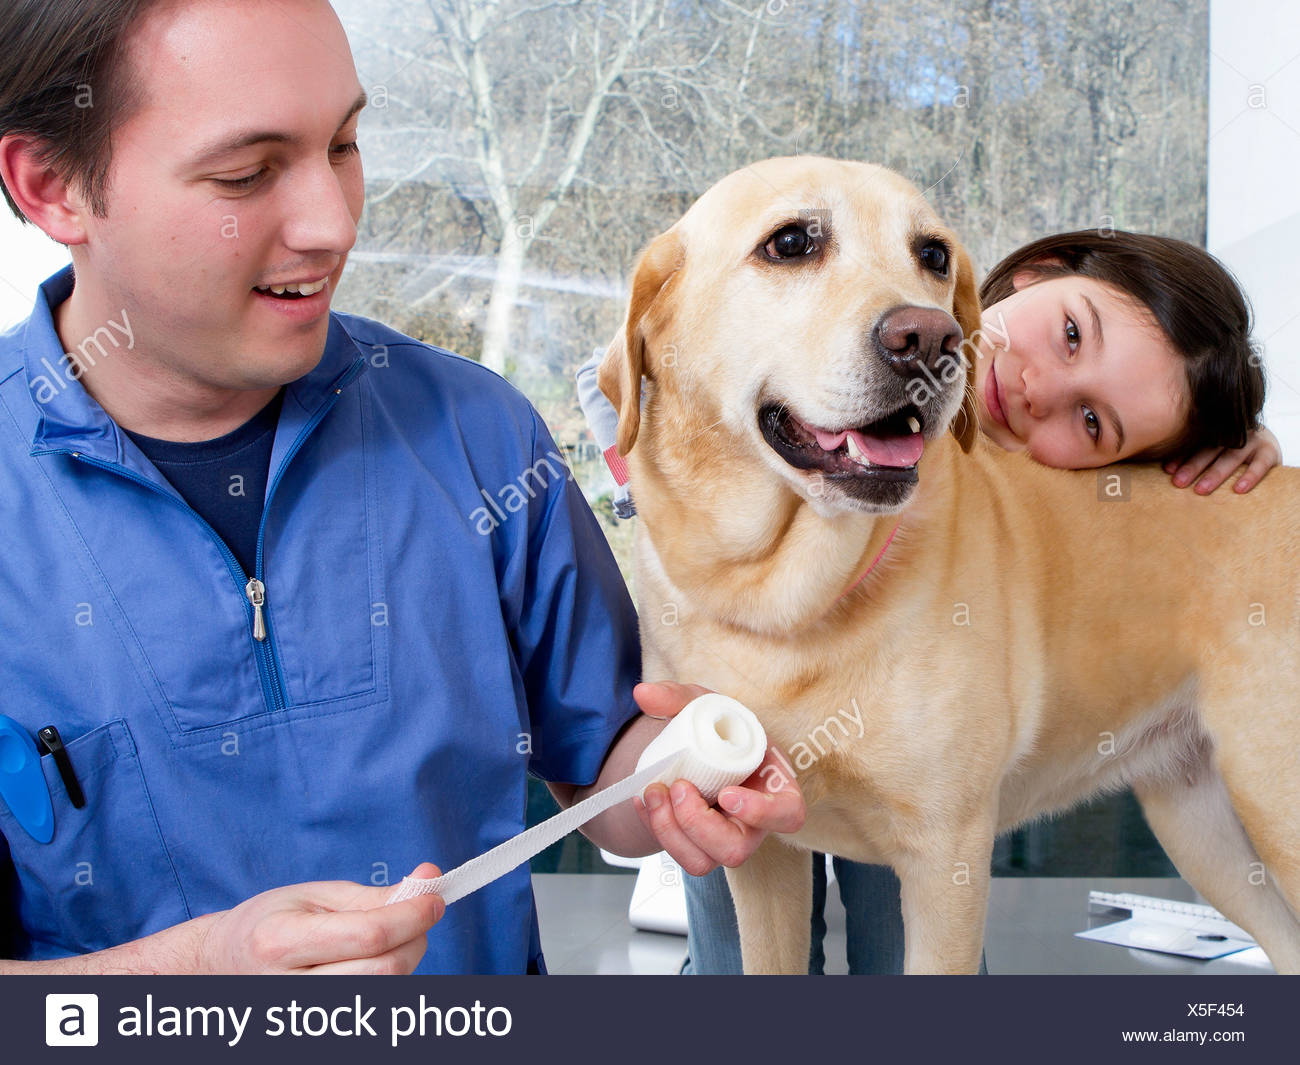 Vet working with girl and her dog - Stock Image